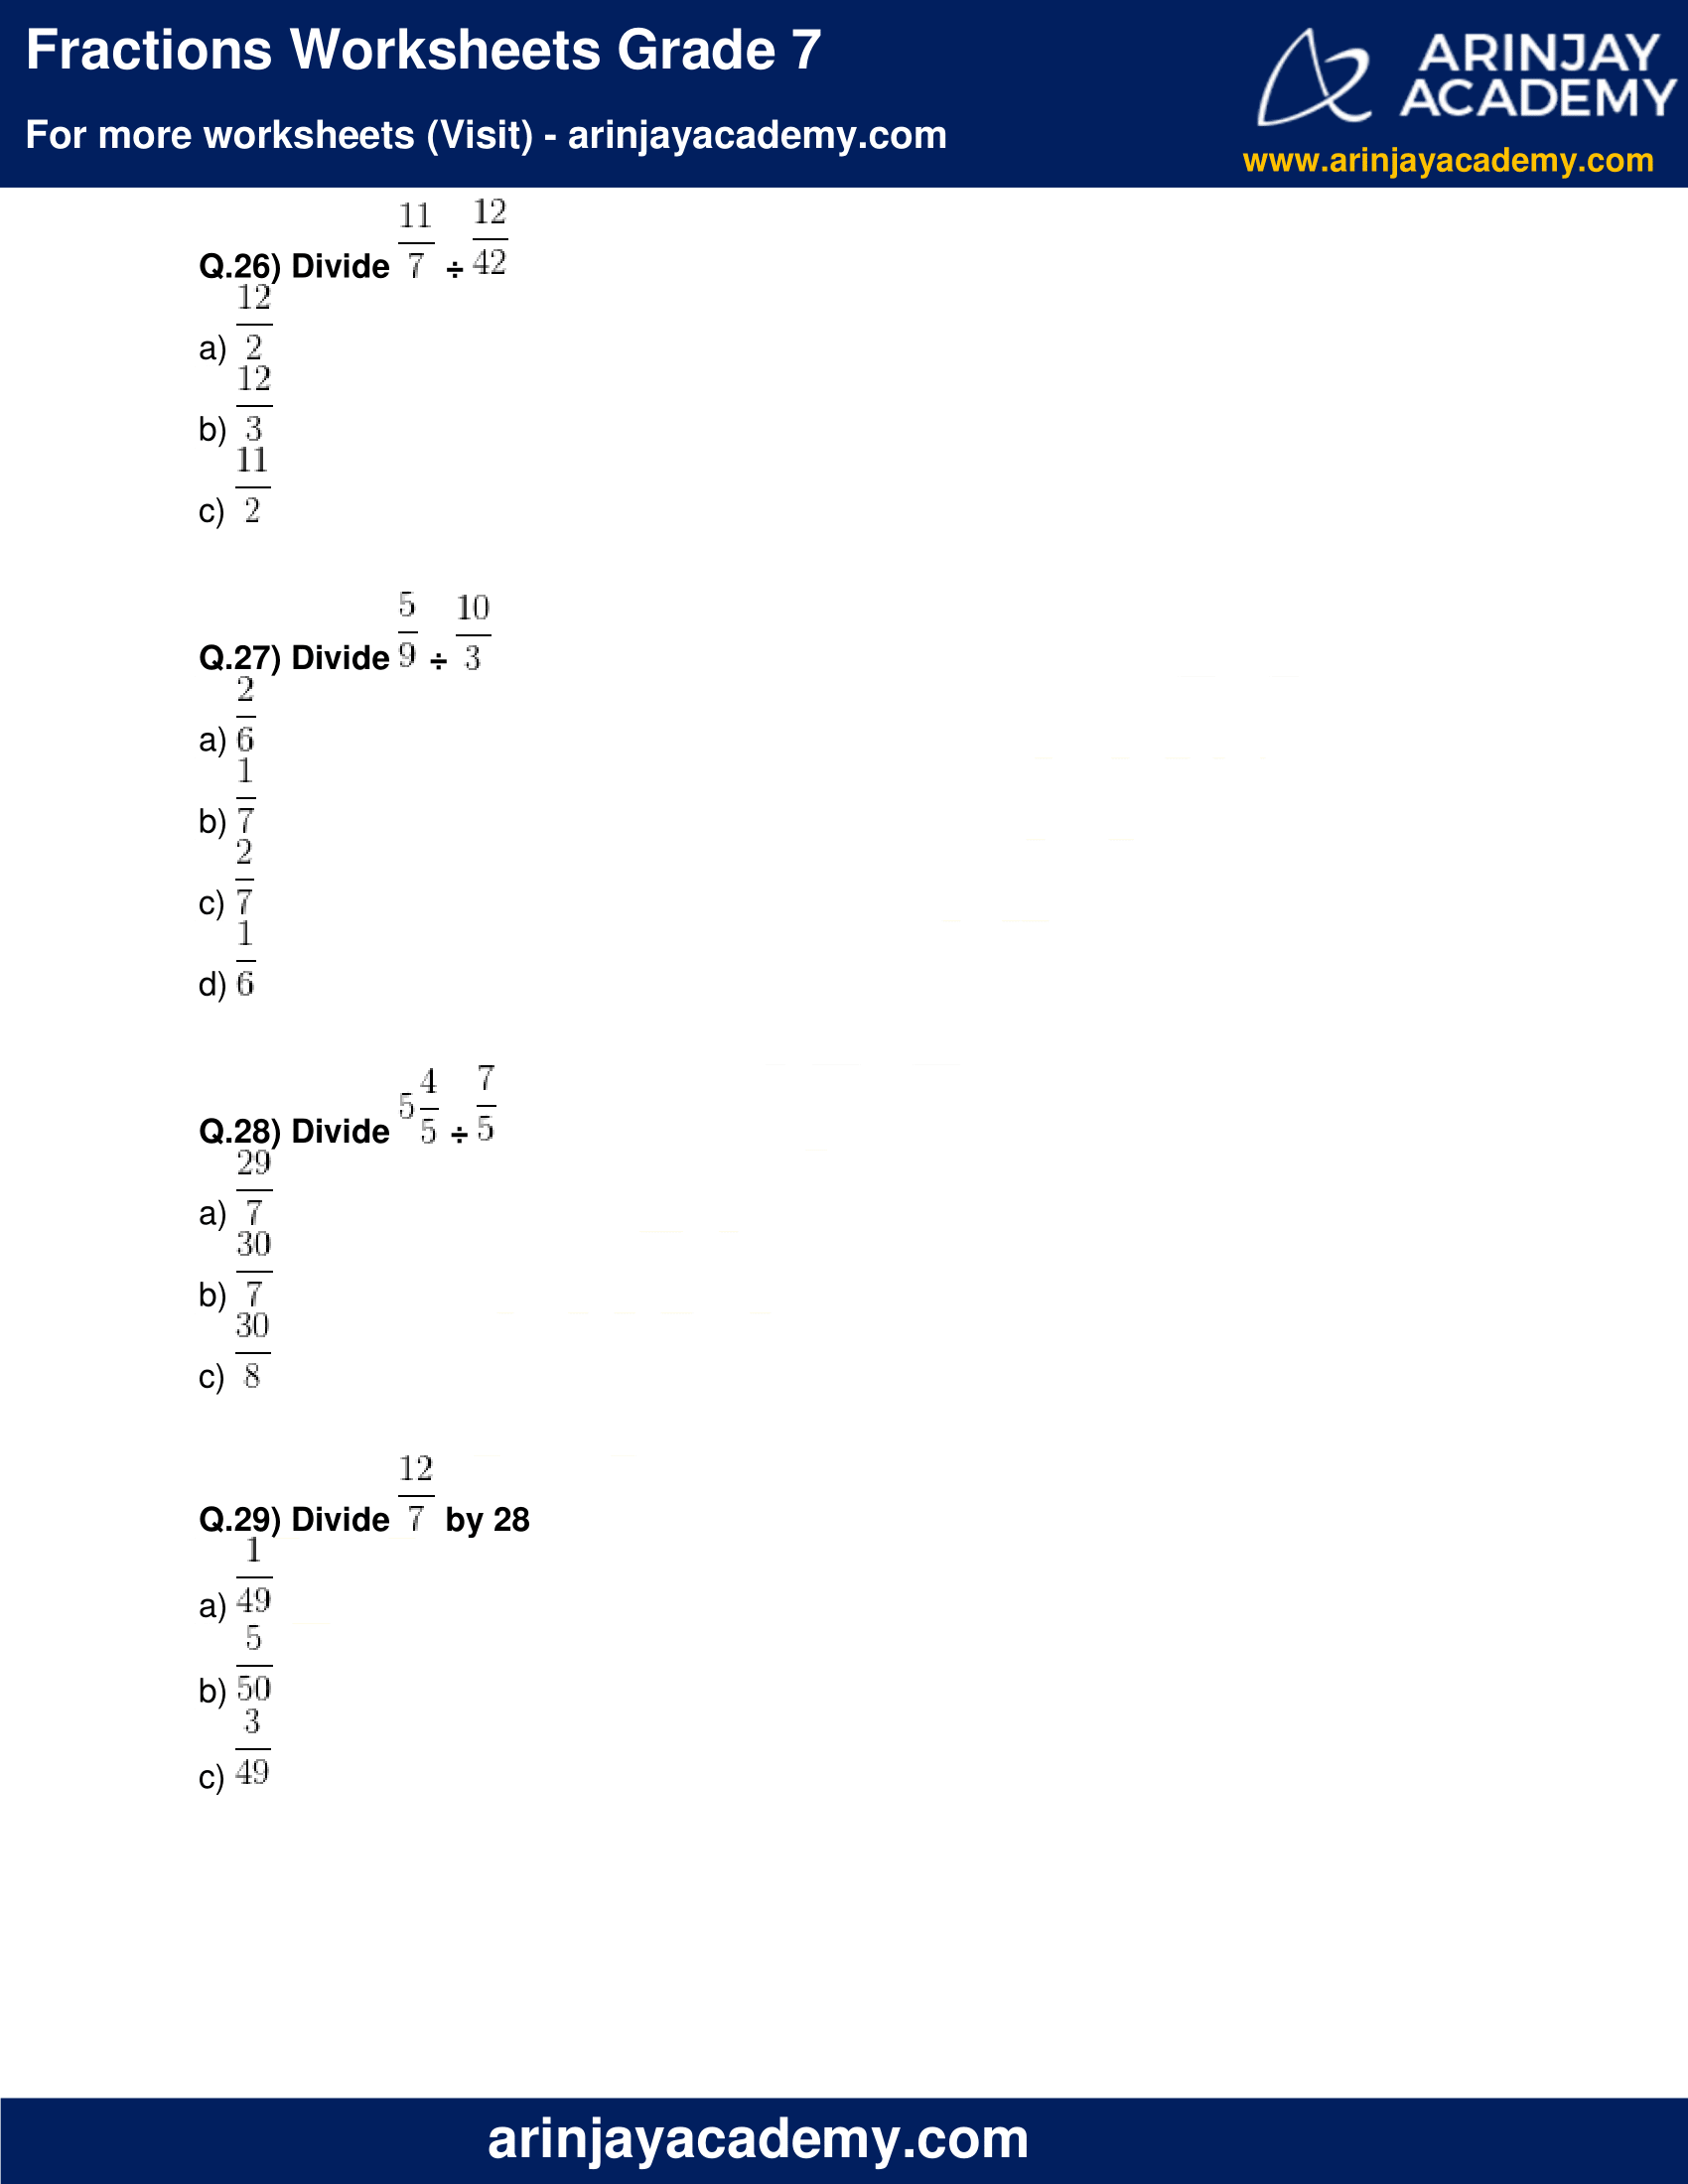 Fractions Worksheets Grade 7 image 6